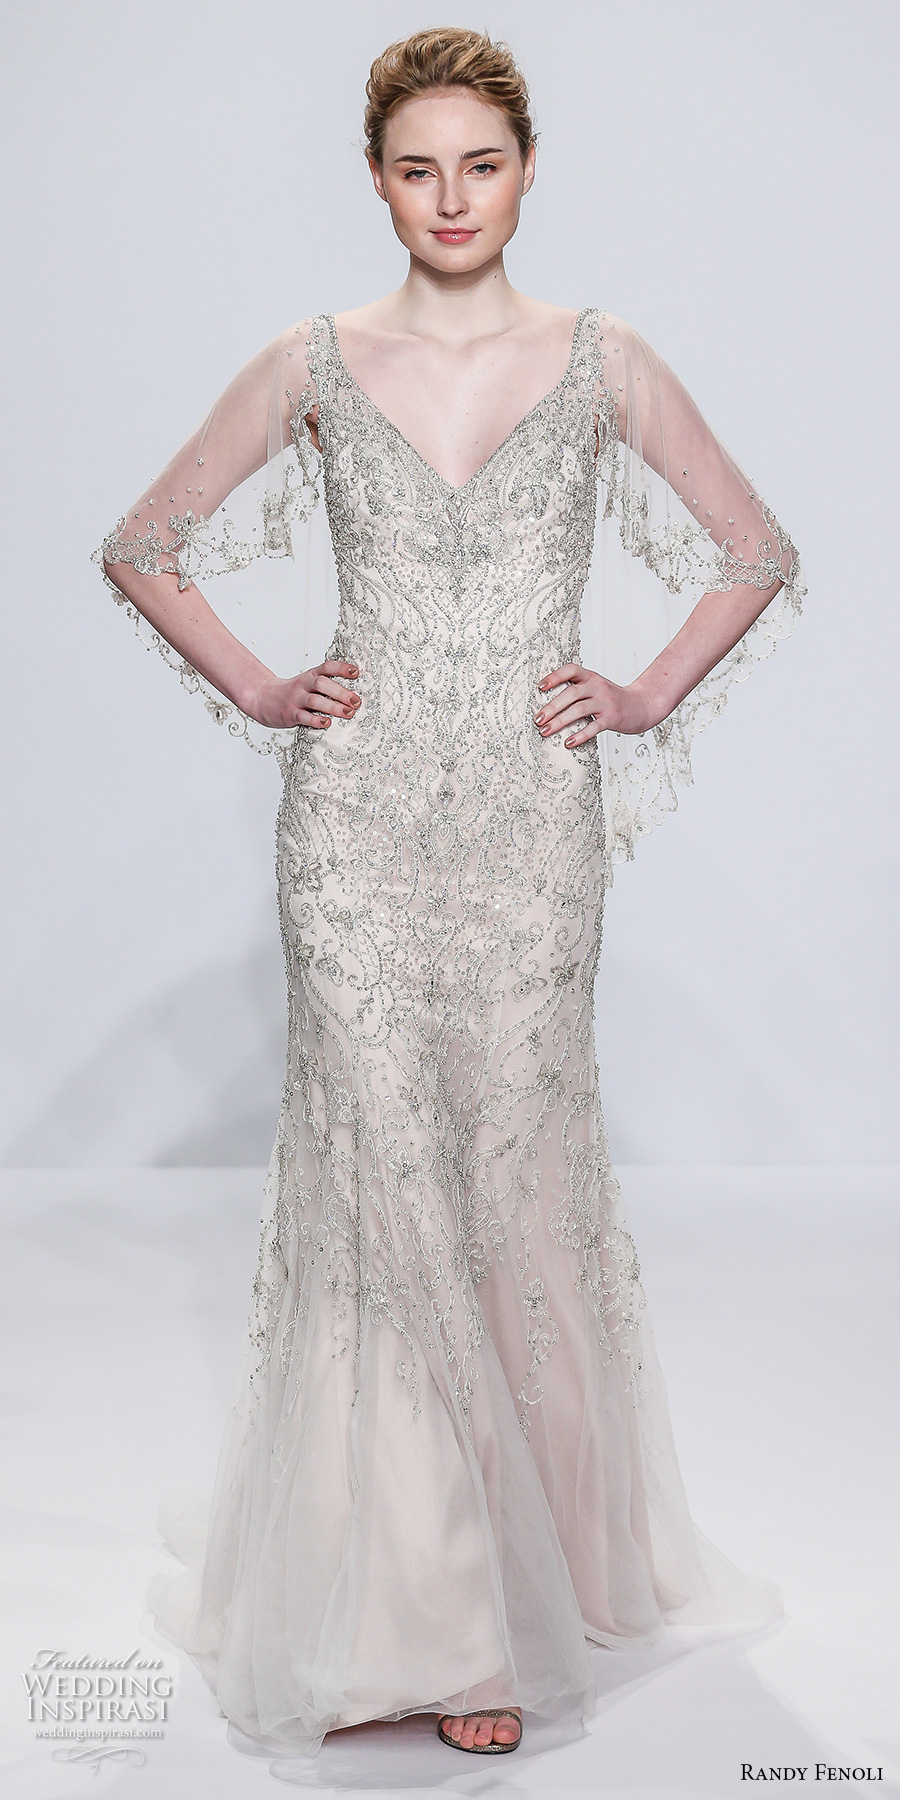 randy fenoli spring 2018 bridal sheer angel sleeves v neck full embellishment art deco glamorous elegant sheath wedding dress open scoop back sweep train (21) mv